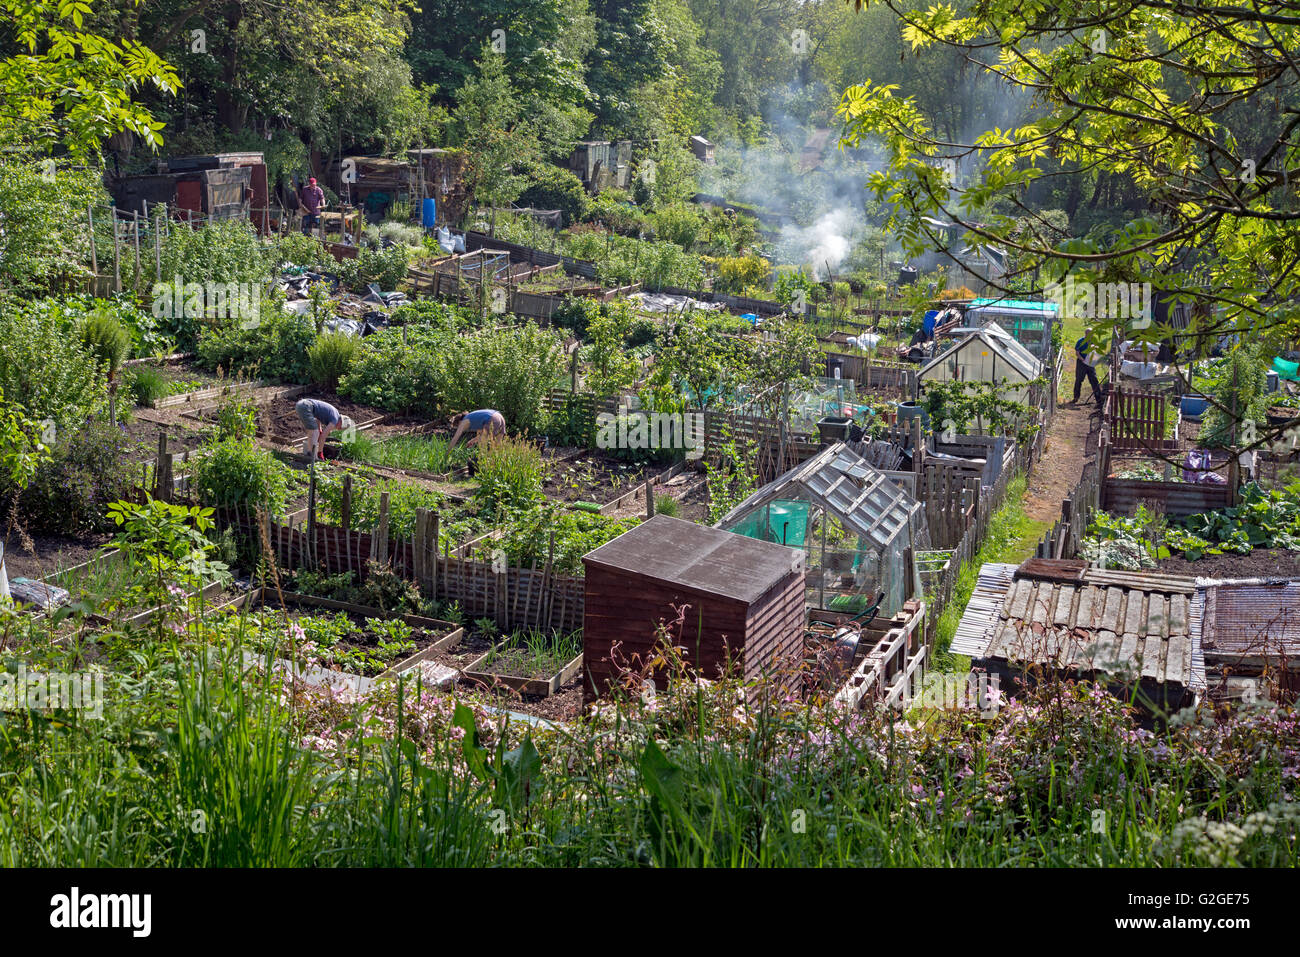 Allotments in summer in Edinburgh, Scotland. - Stock Image